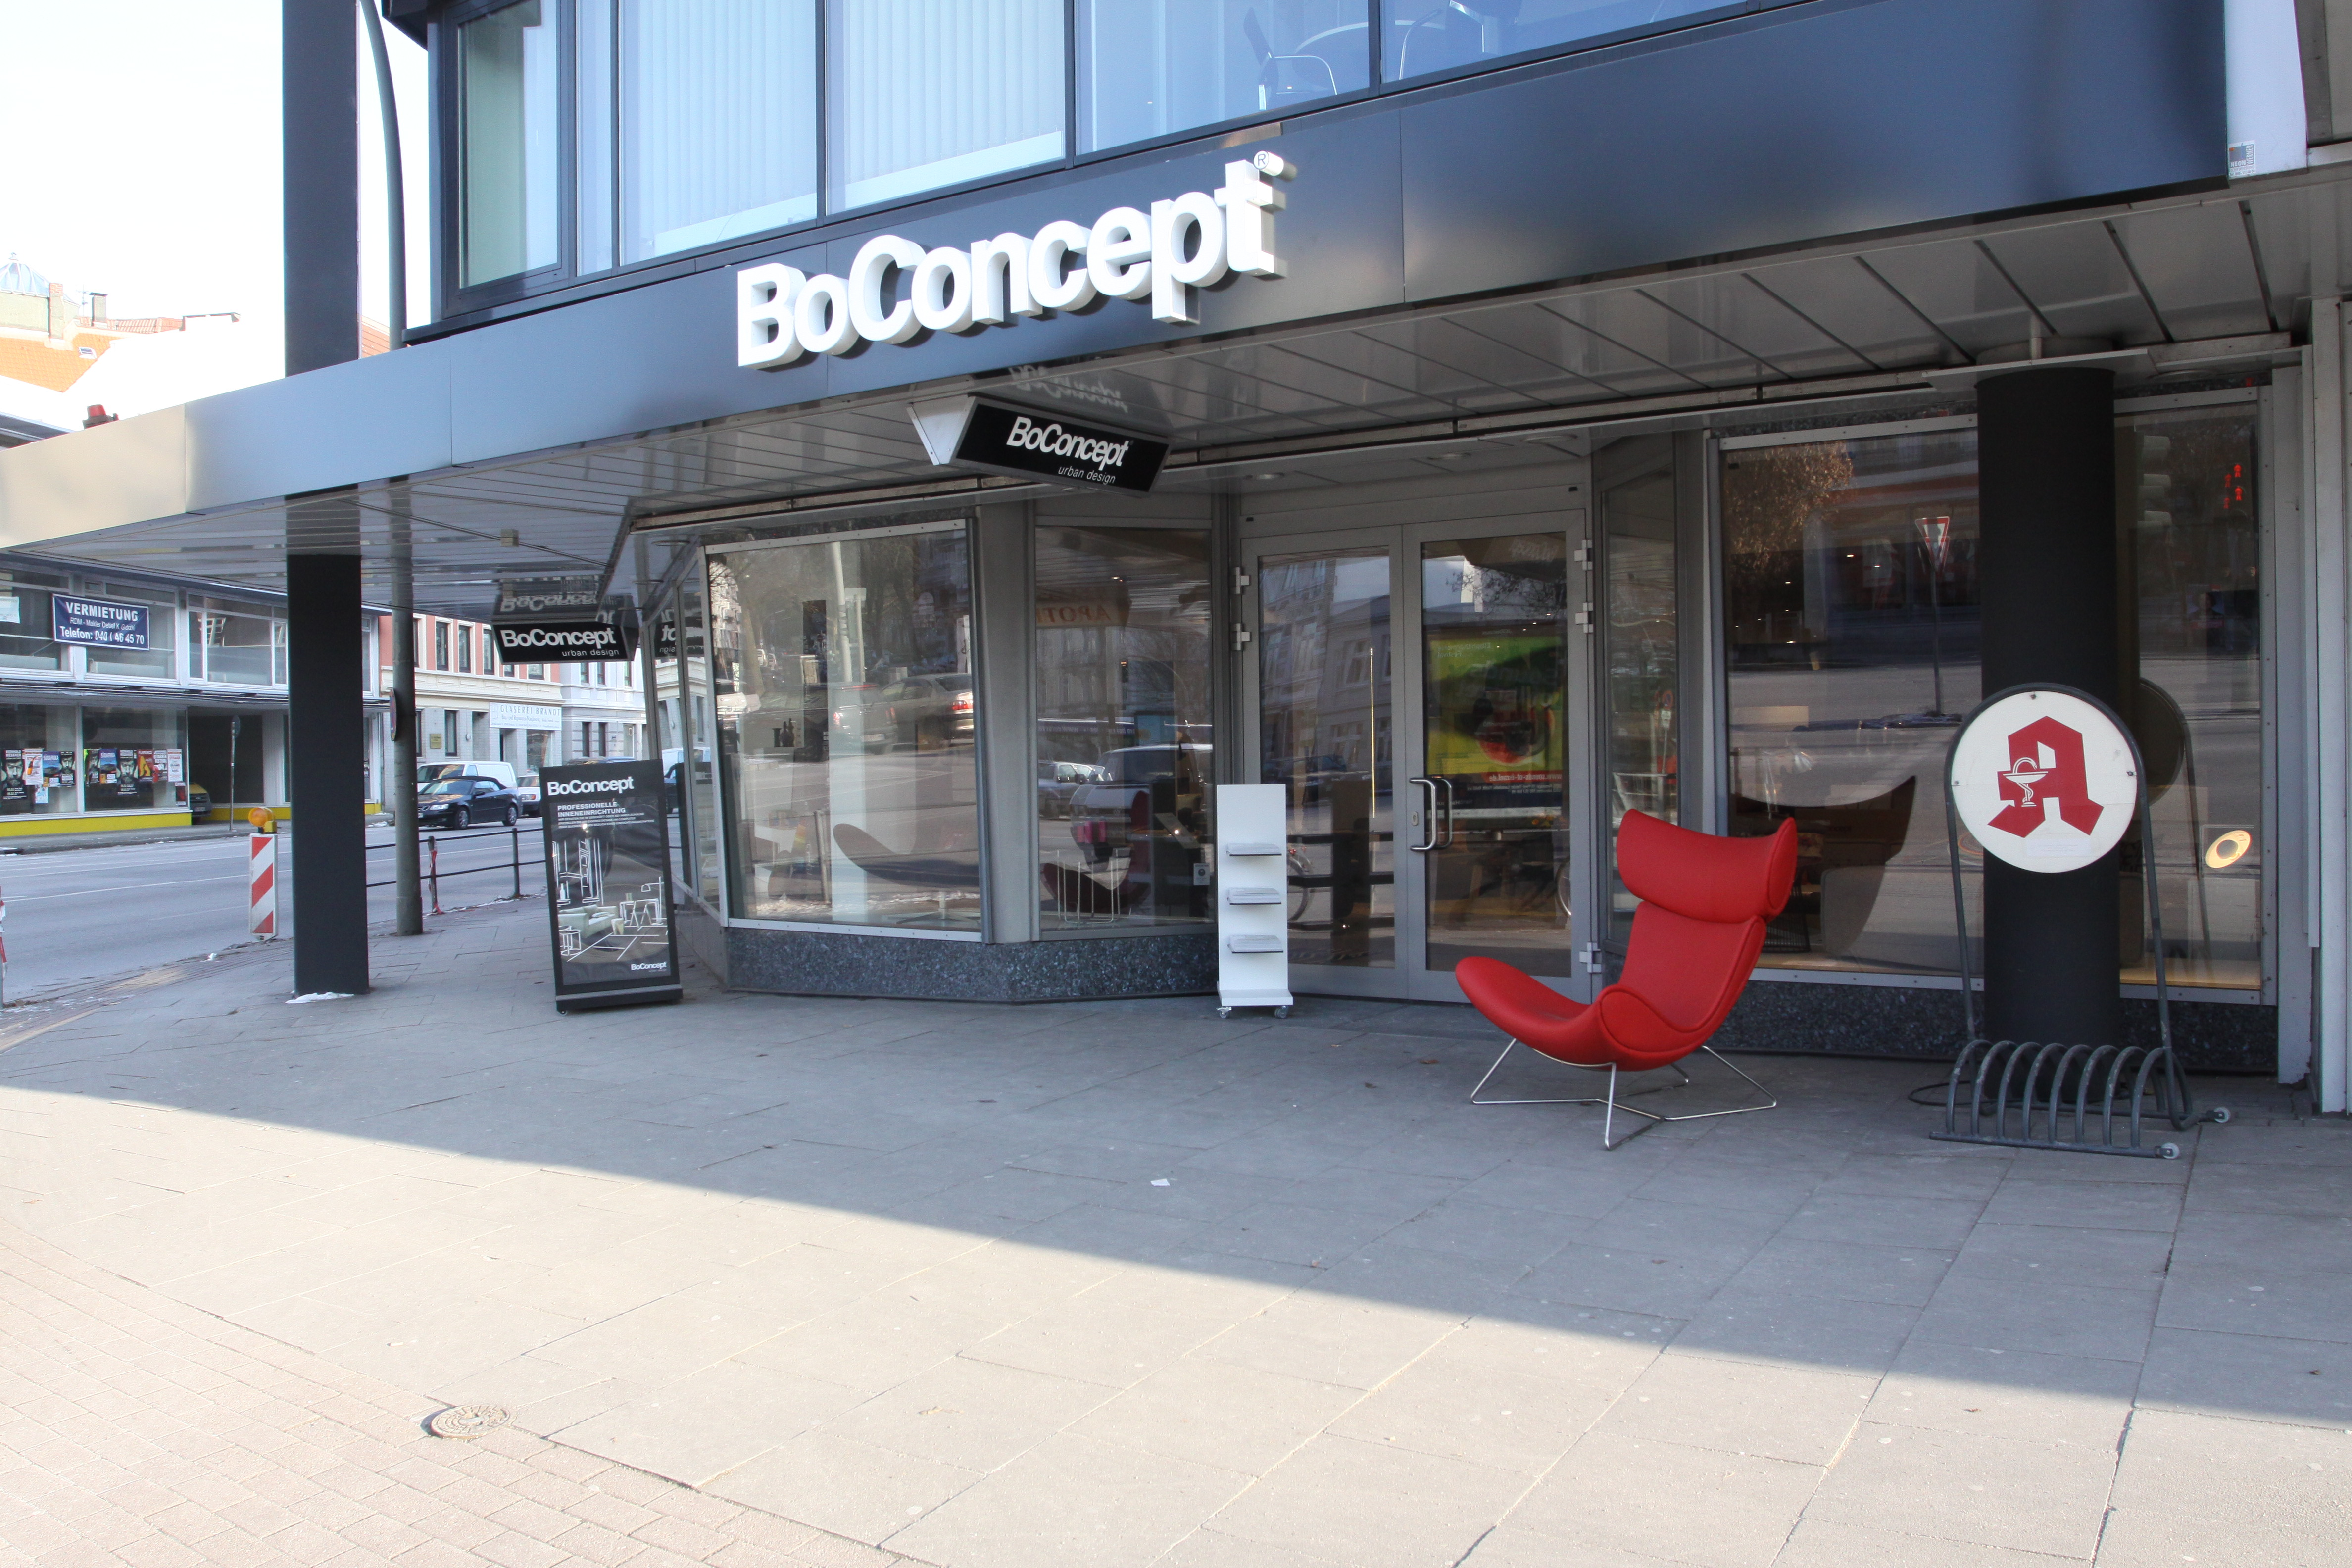 boconcept hamburg eppendorf in hamburg branchenbuch deutschland. Black Bedroom Furniture Sets. Home Design Ideas